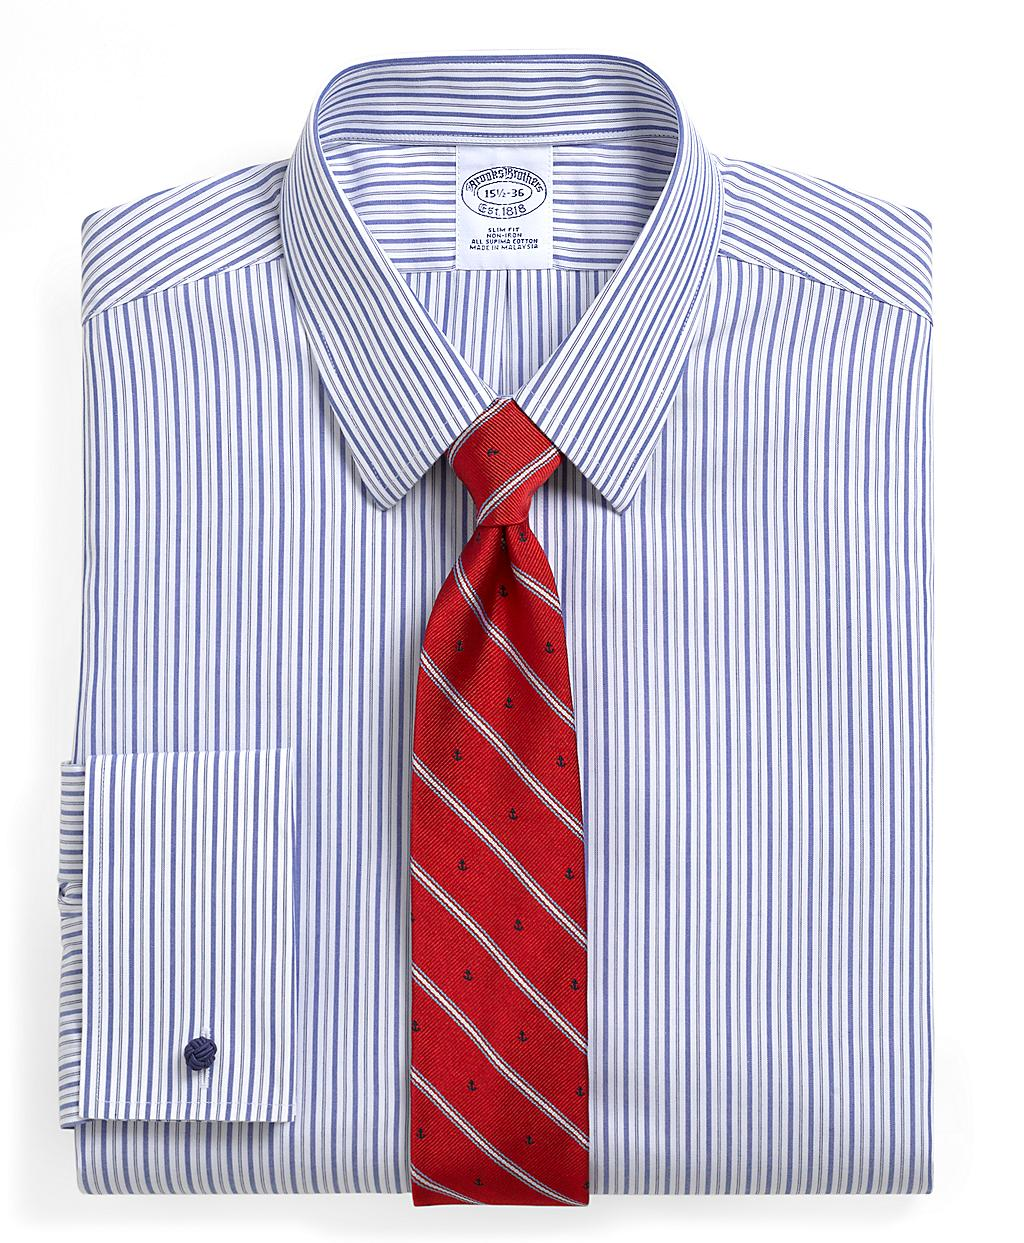 Brooks Brothers Supima Cotton Noniron Slim Fit Pinstripe